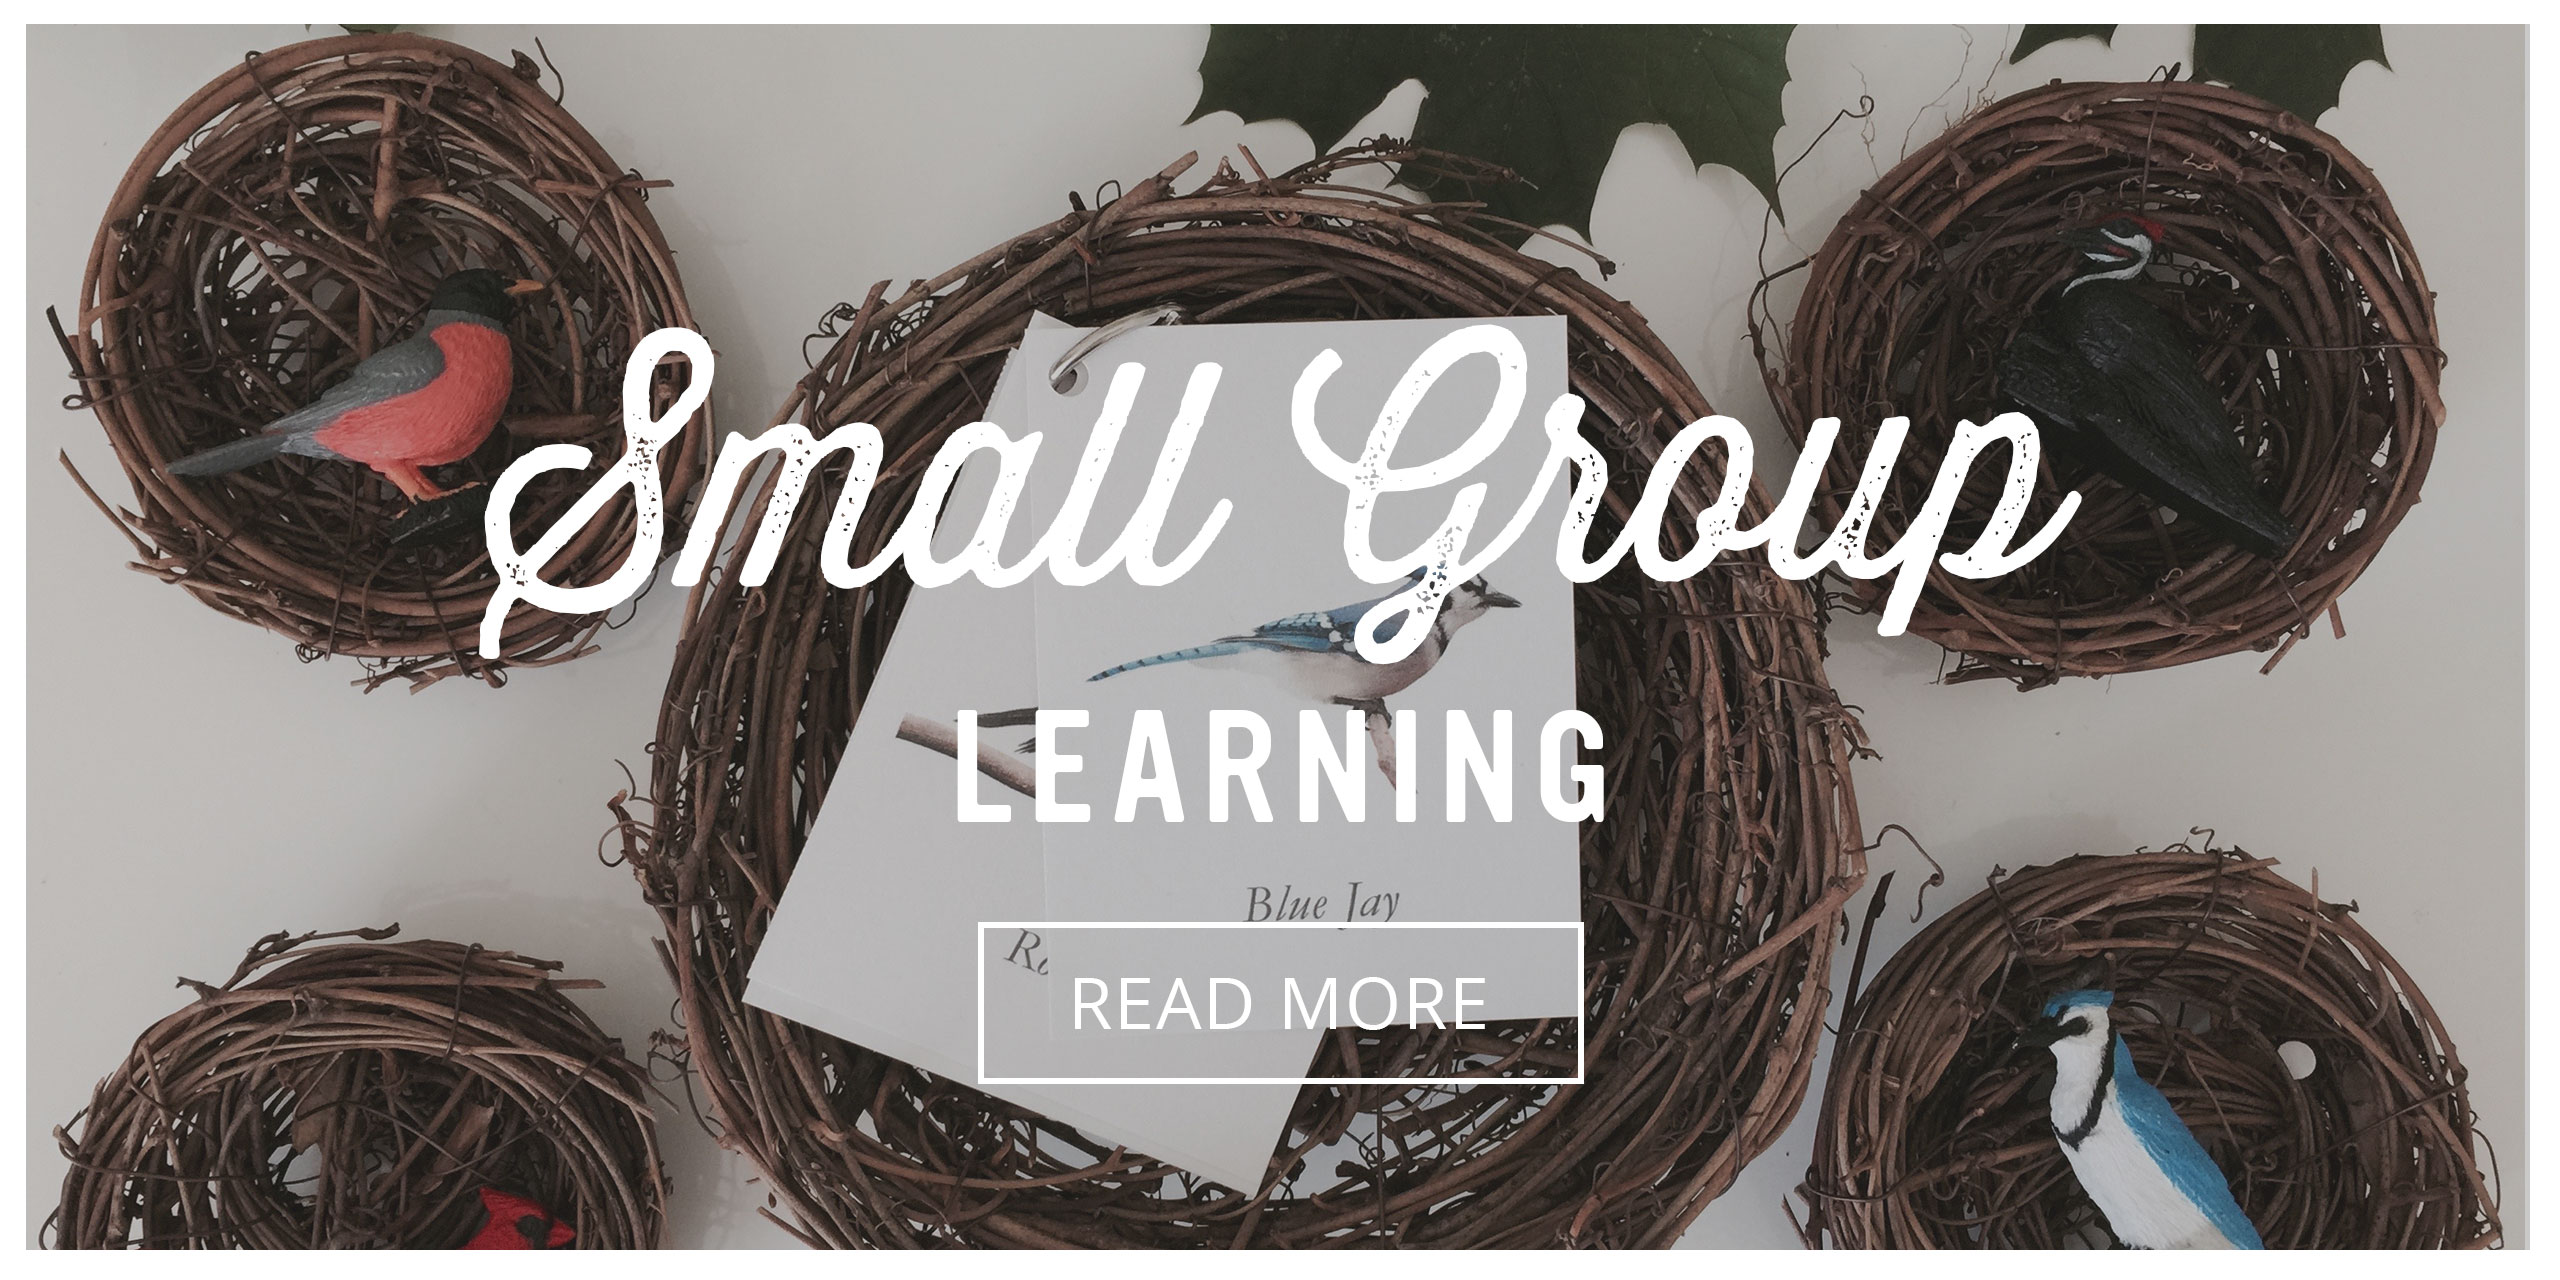 Playful Learning Studio: Small Group Learning